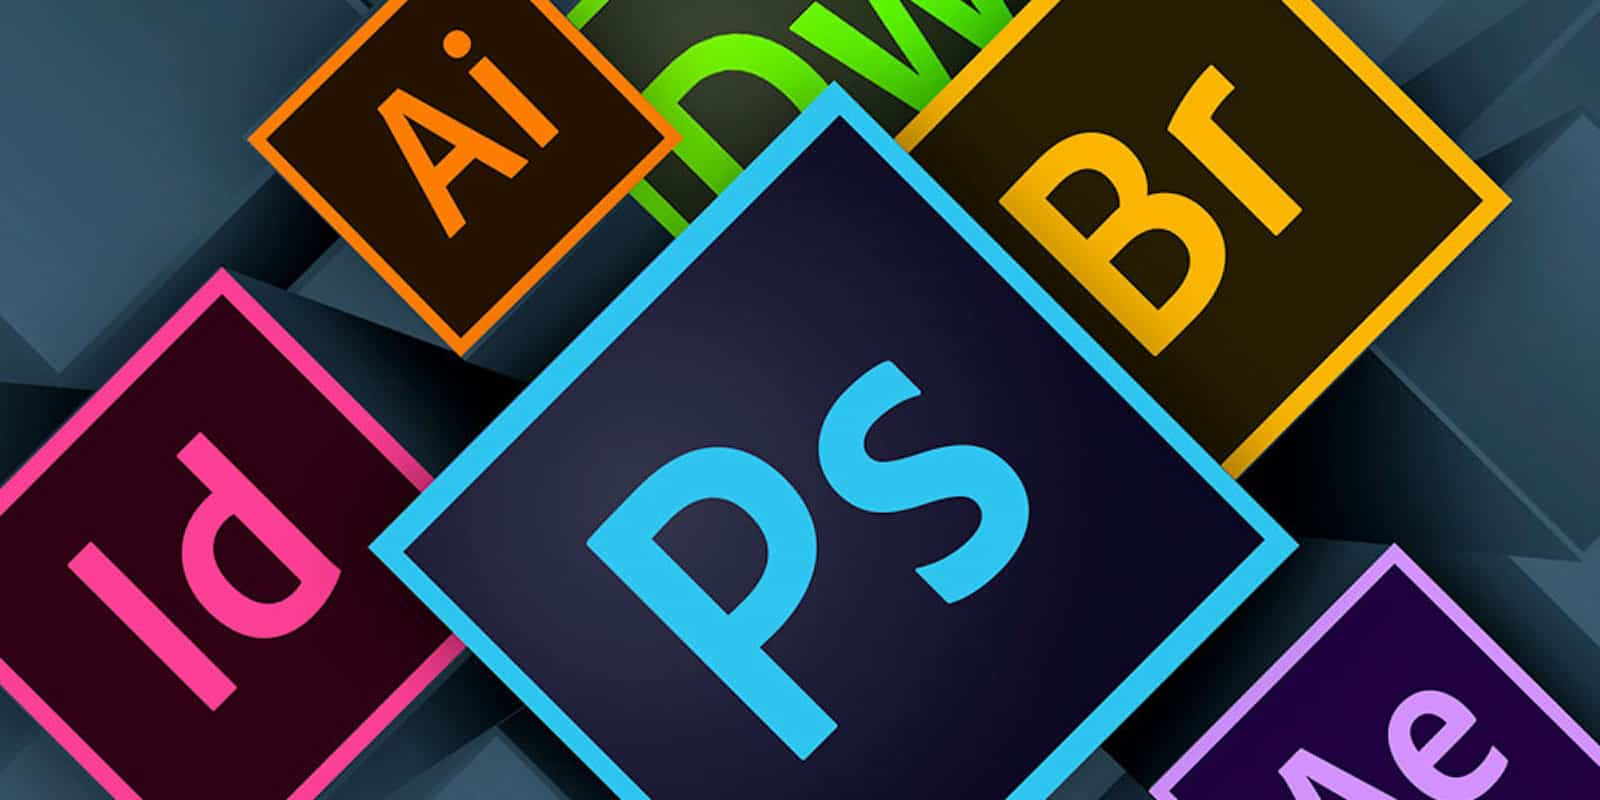 Get the skills you need with Adobe's creative apps for whatever you want to pay.